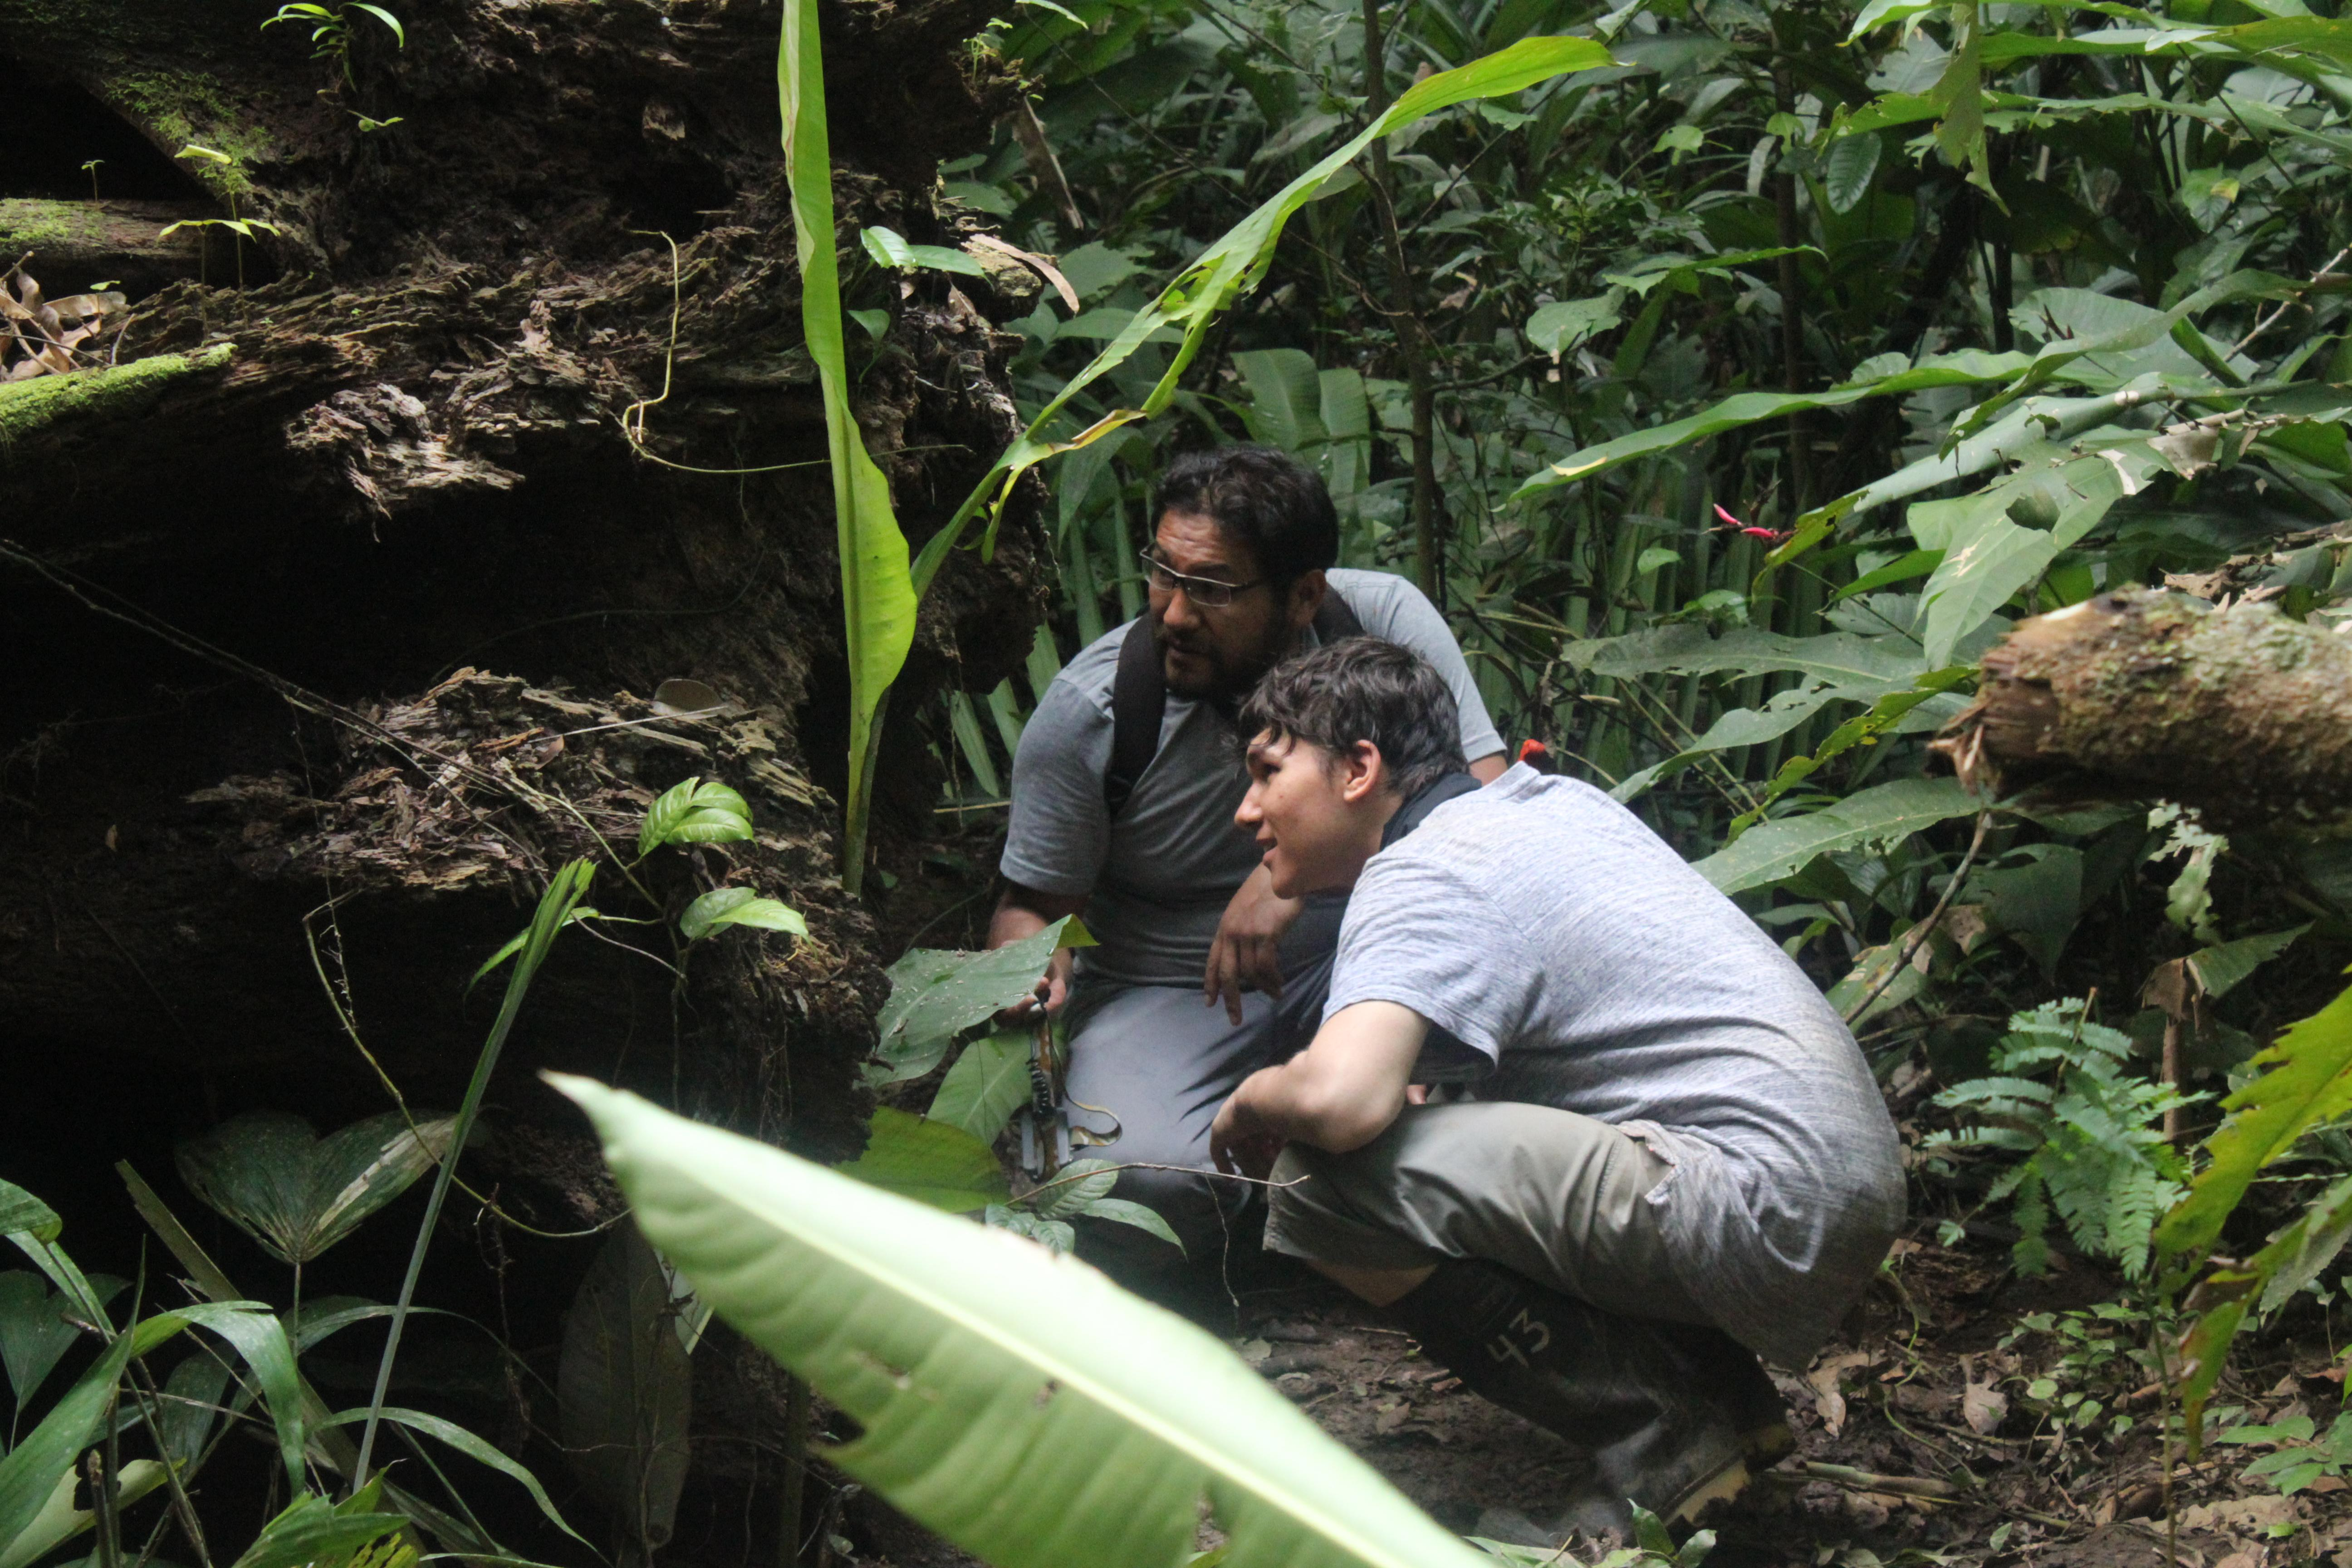 A volunteer is pictured inspecting roosting bats in a tree whilst on his rainforest conservation work experience project in Peru with Projects Abroad.